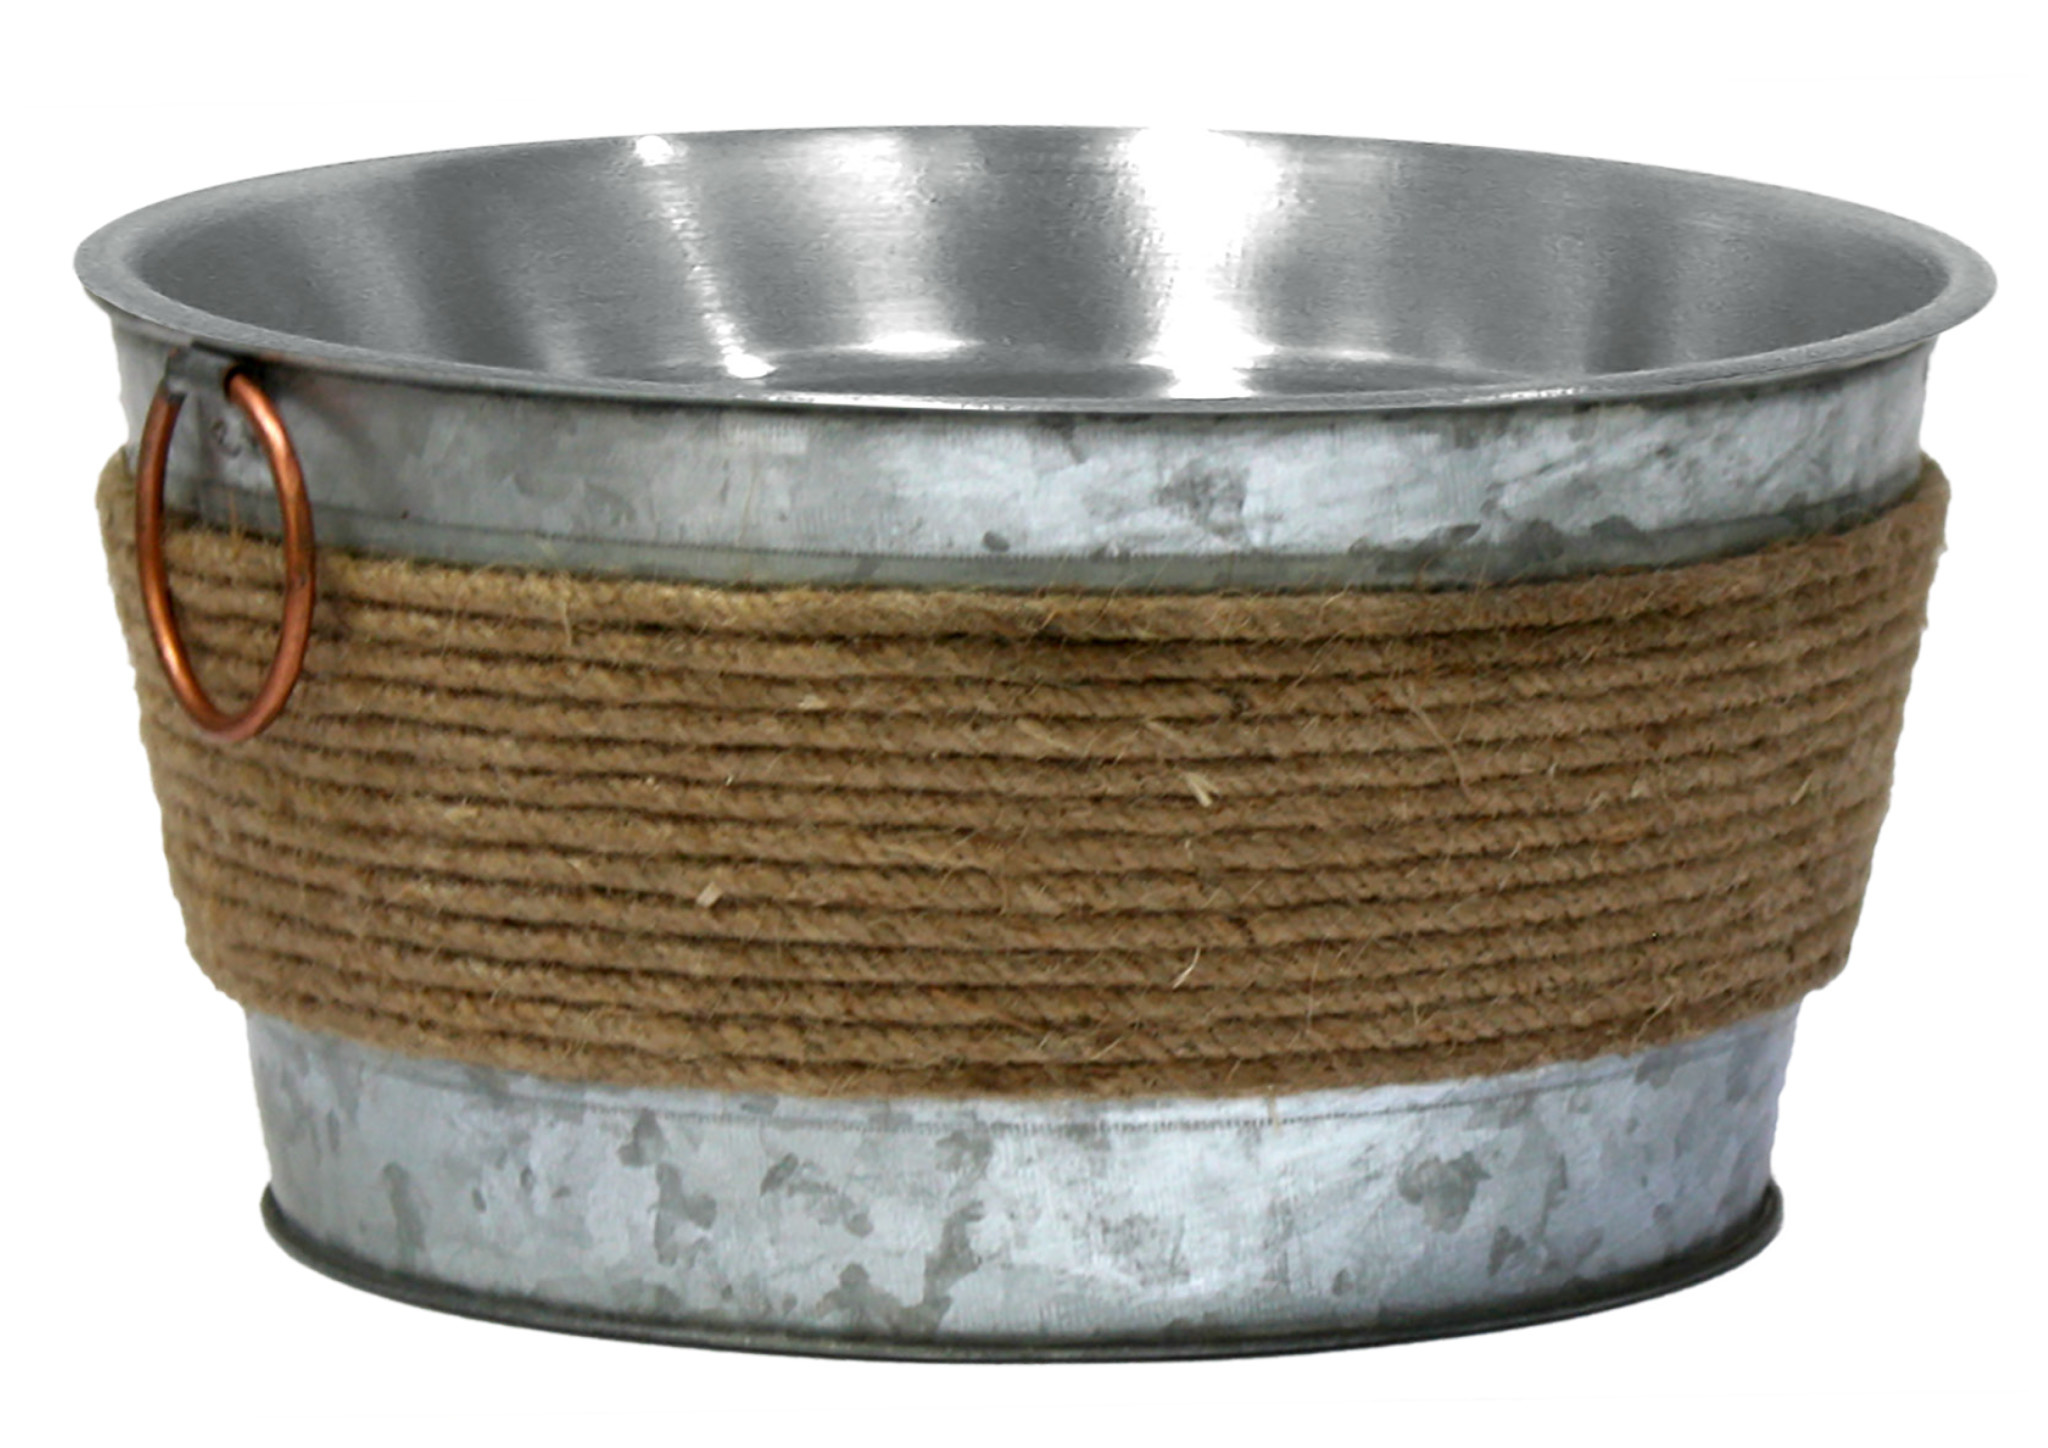 Croci steel bowl met inox